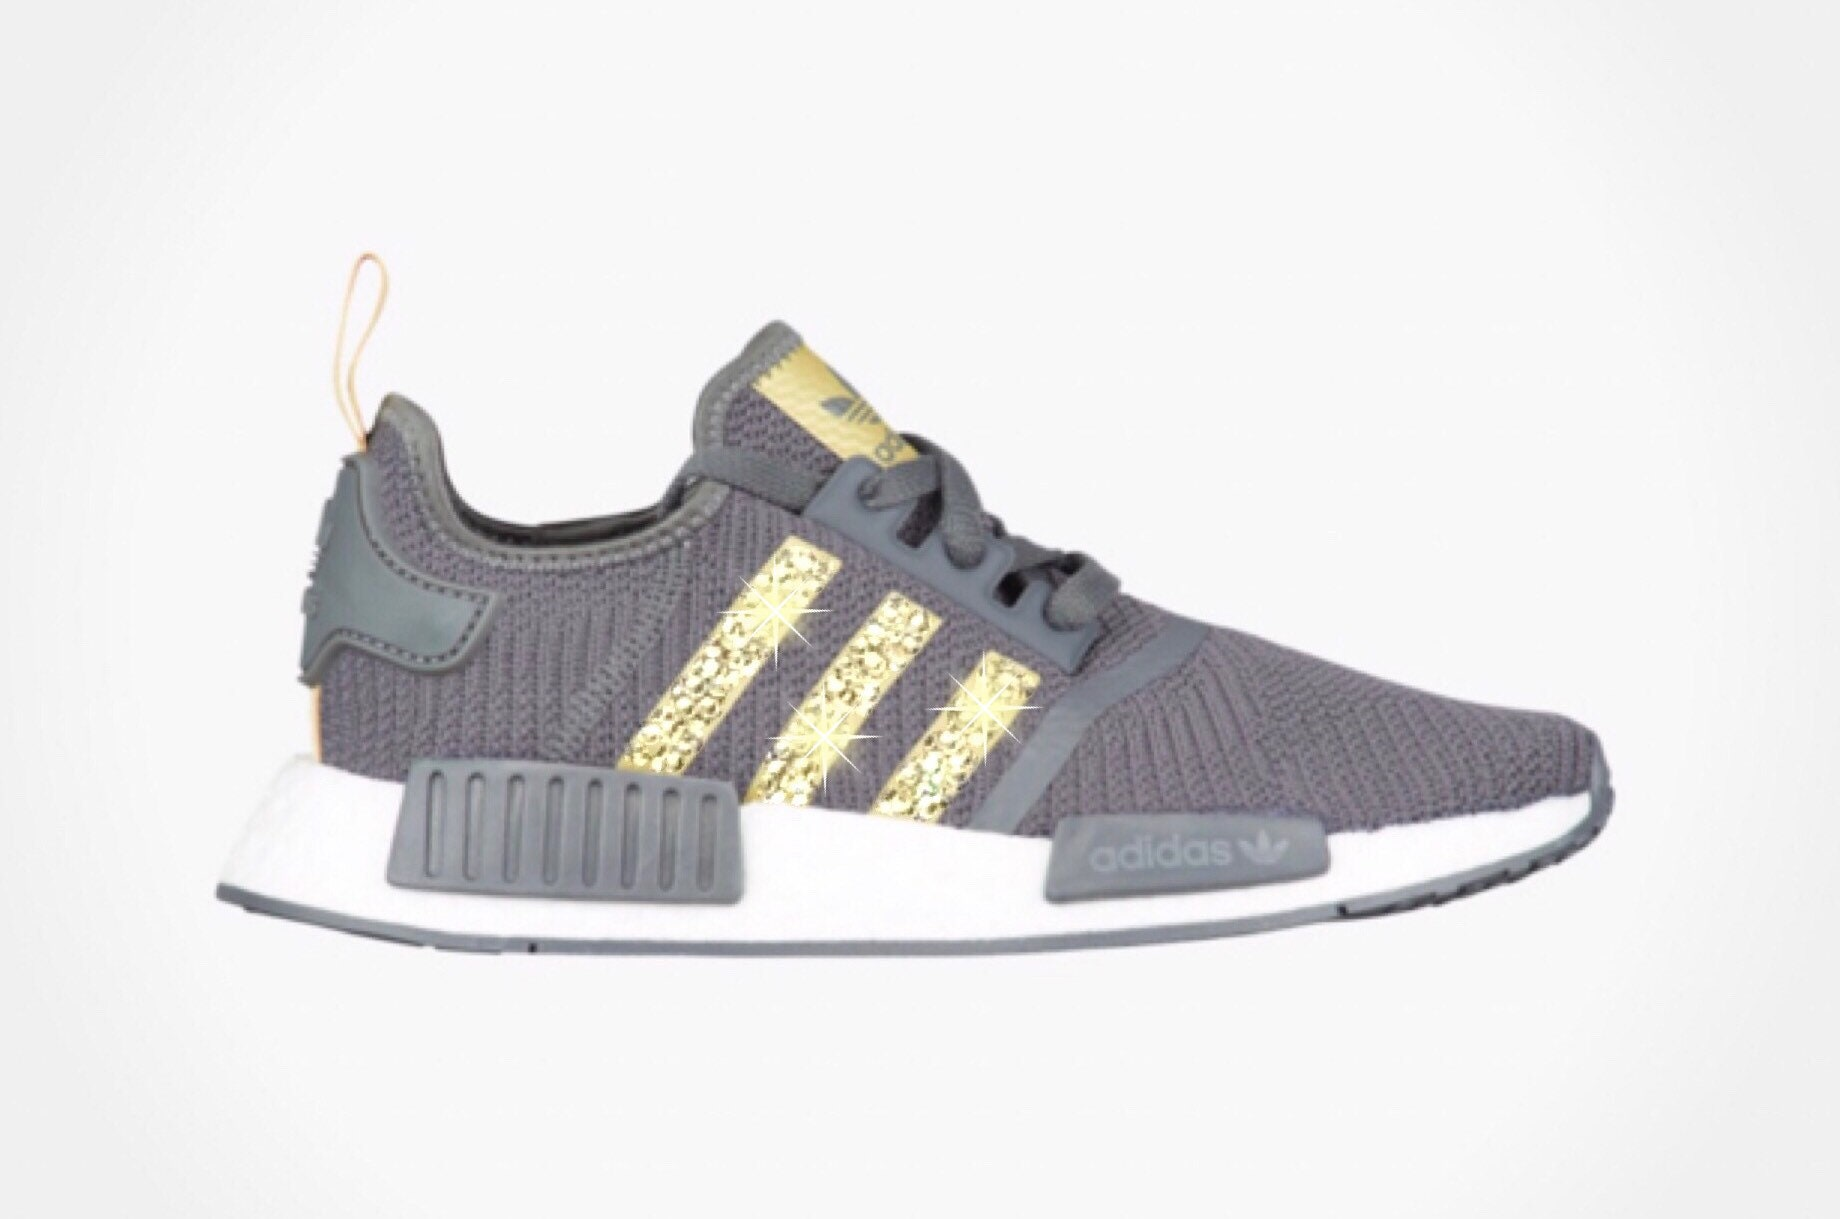 new concept e9179 bf759 Women's Adidas NMD R1 Shoes with Gold Swarovski Crystals on Stripes